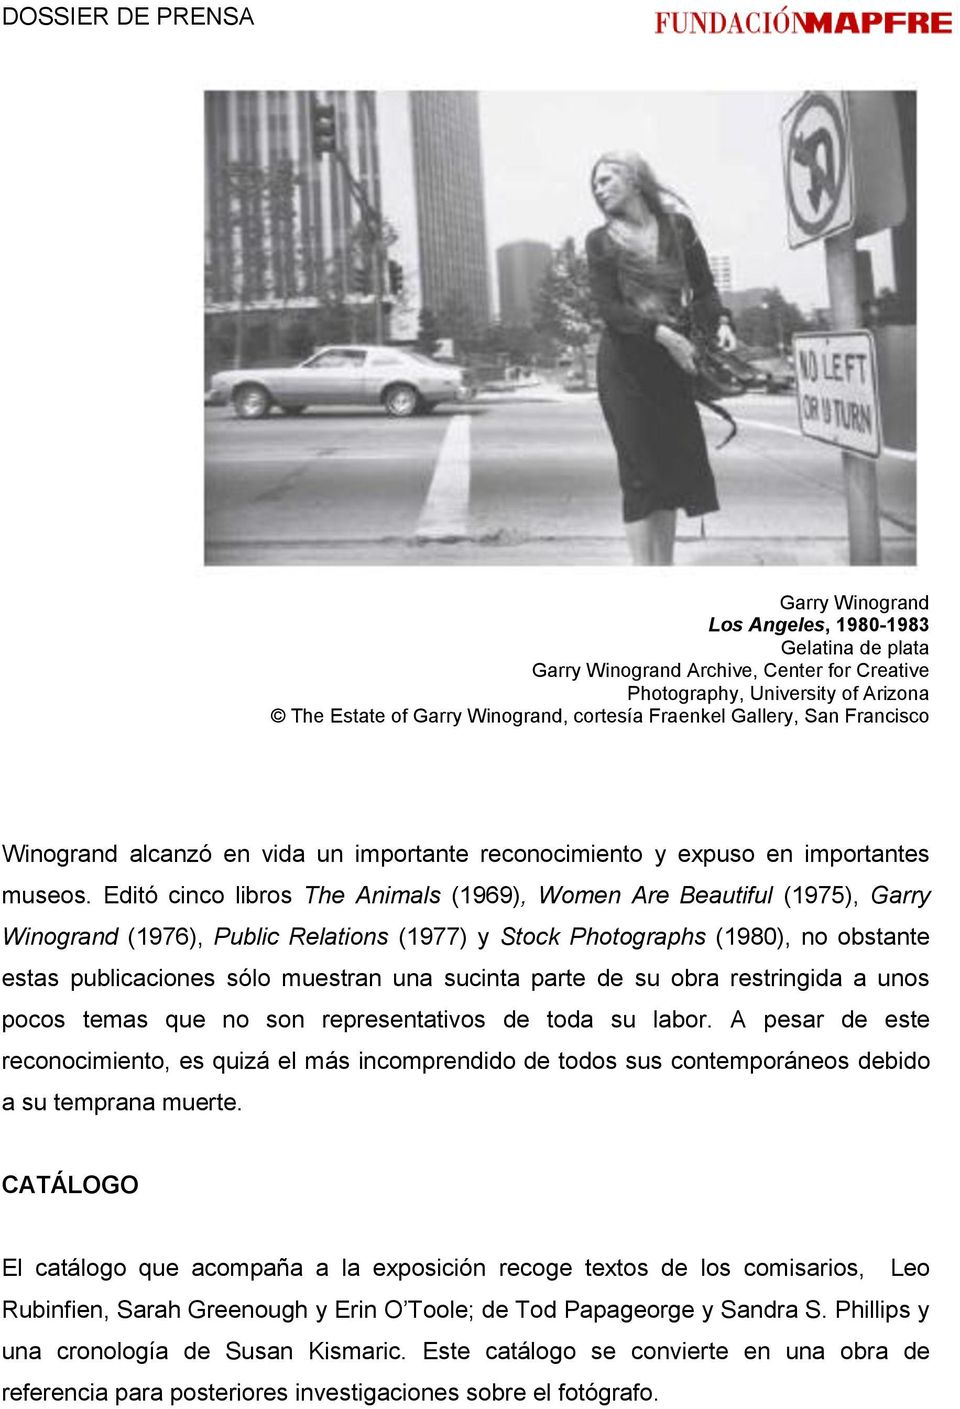 Editó cinco libros The Animals (1969), Women Are Beautiful (1975), Garry Winogrand (1976), Public Relations (1977) y Stock Photographs (1980), no obstante estas publicaciones sólo muestran una